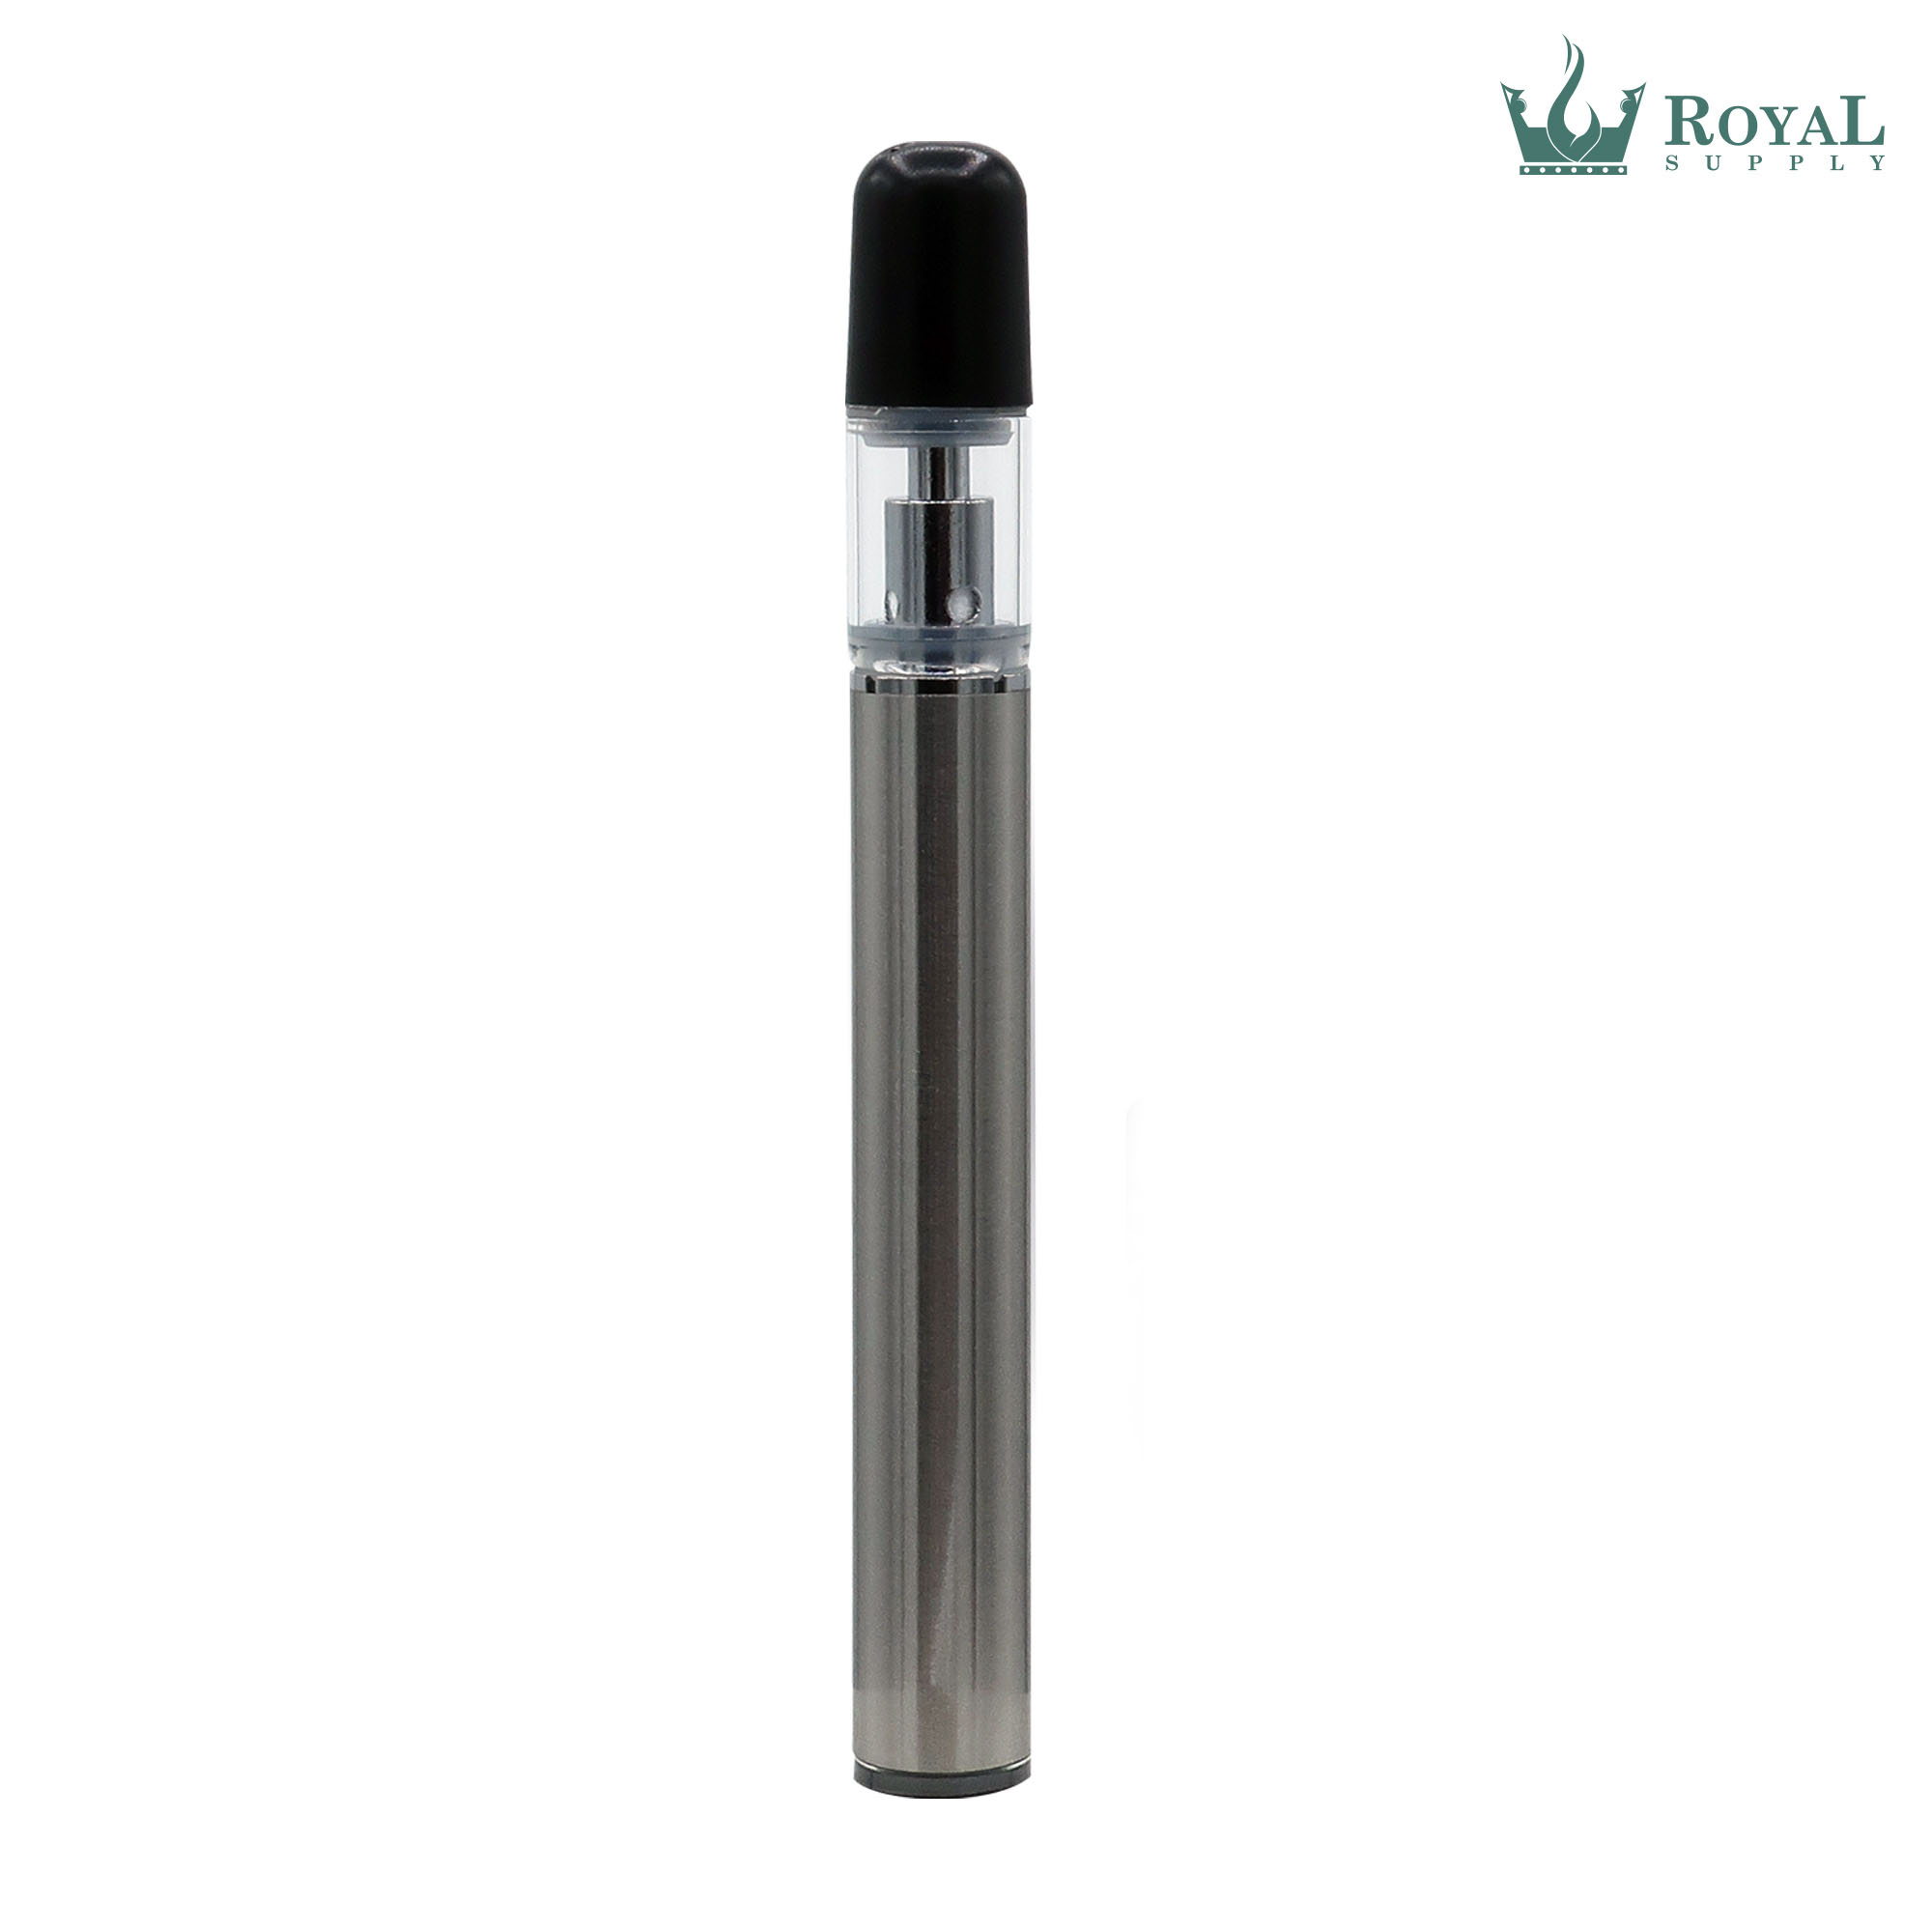 290 MAH STAINLESS STEEL DISPOSABLE WITH 0.3 ML CERAMIC CORE GLASS CARTRIDGE AND BULLET TIP